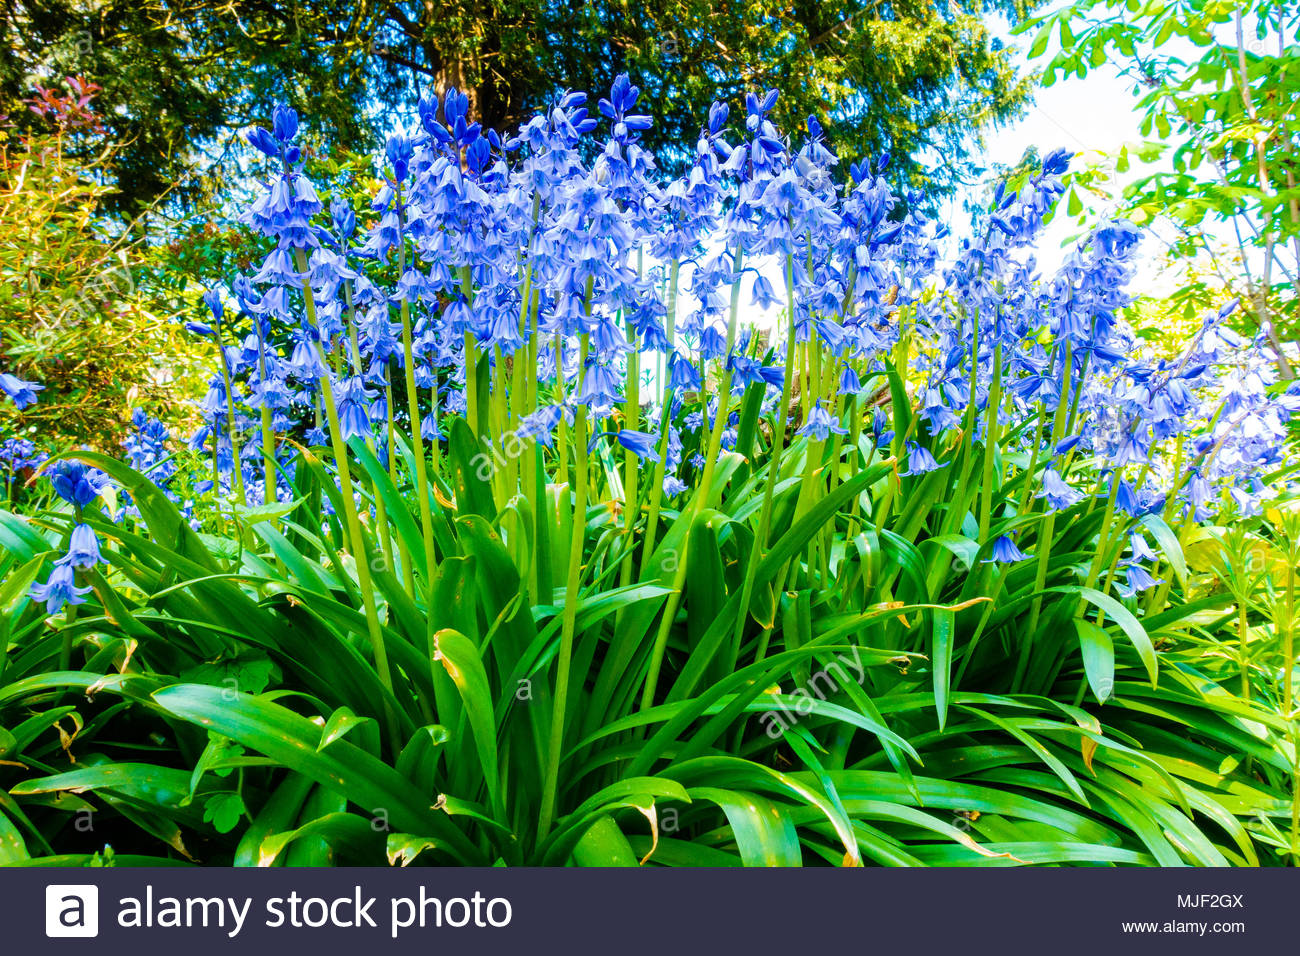 Croxteth Hall, Liverpool, UK 5 May 2018. UK Weather Croxteth Hall, Liverpool England UK 05/05 2018 Spring Spanish Bluebells (Hyacinthoides hispanica) in the sunshine on the Bank Holiday Mayday Weekend at Croxteth Hall, Croxteth Country Park, Liverpool England UK Credit: Christopher Canty Photography/Alamy Live News - Stock Image